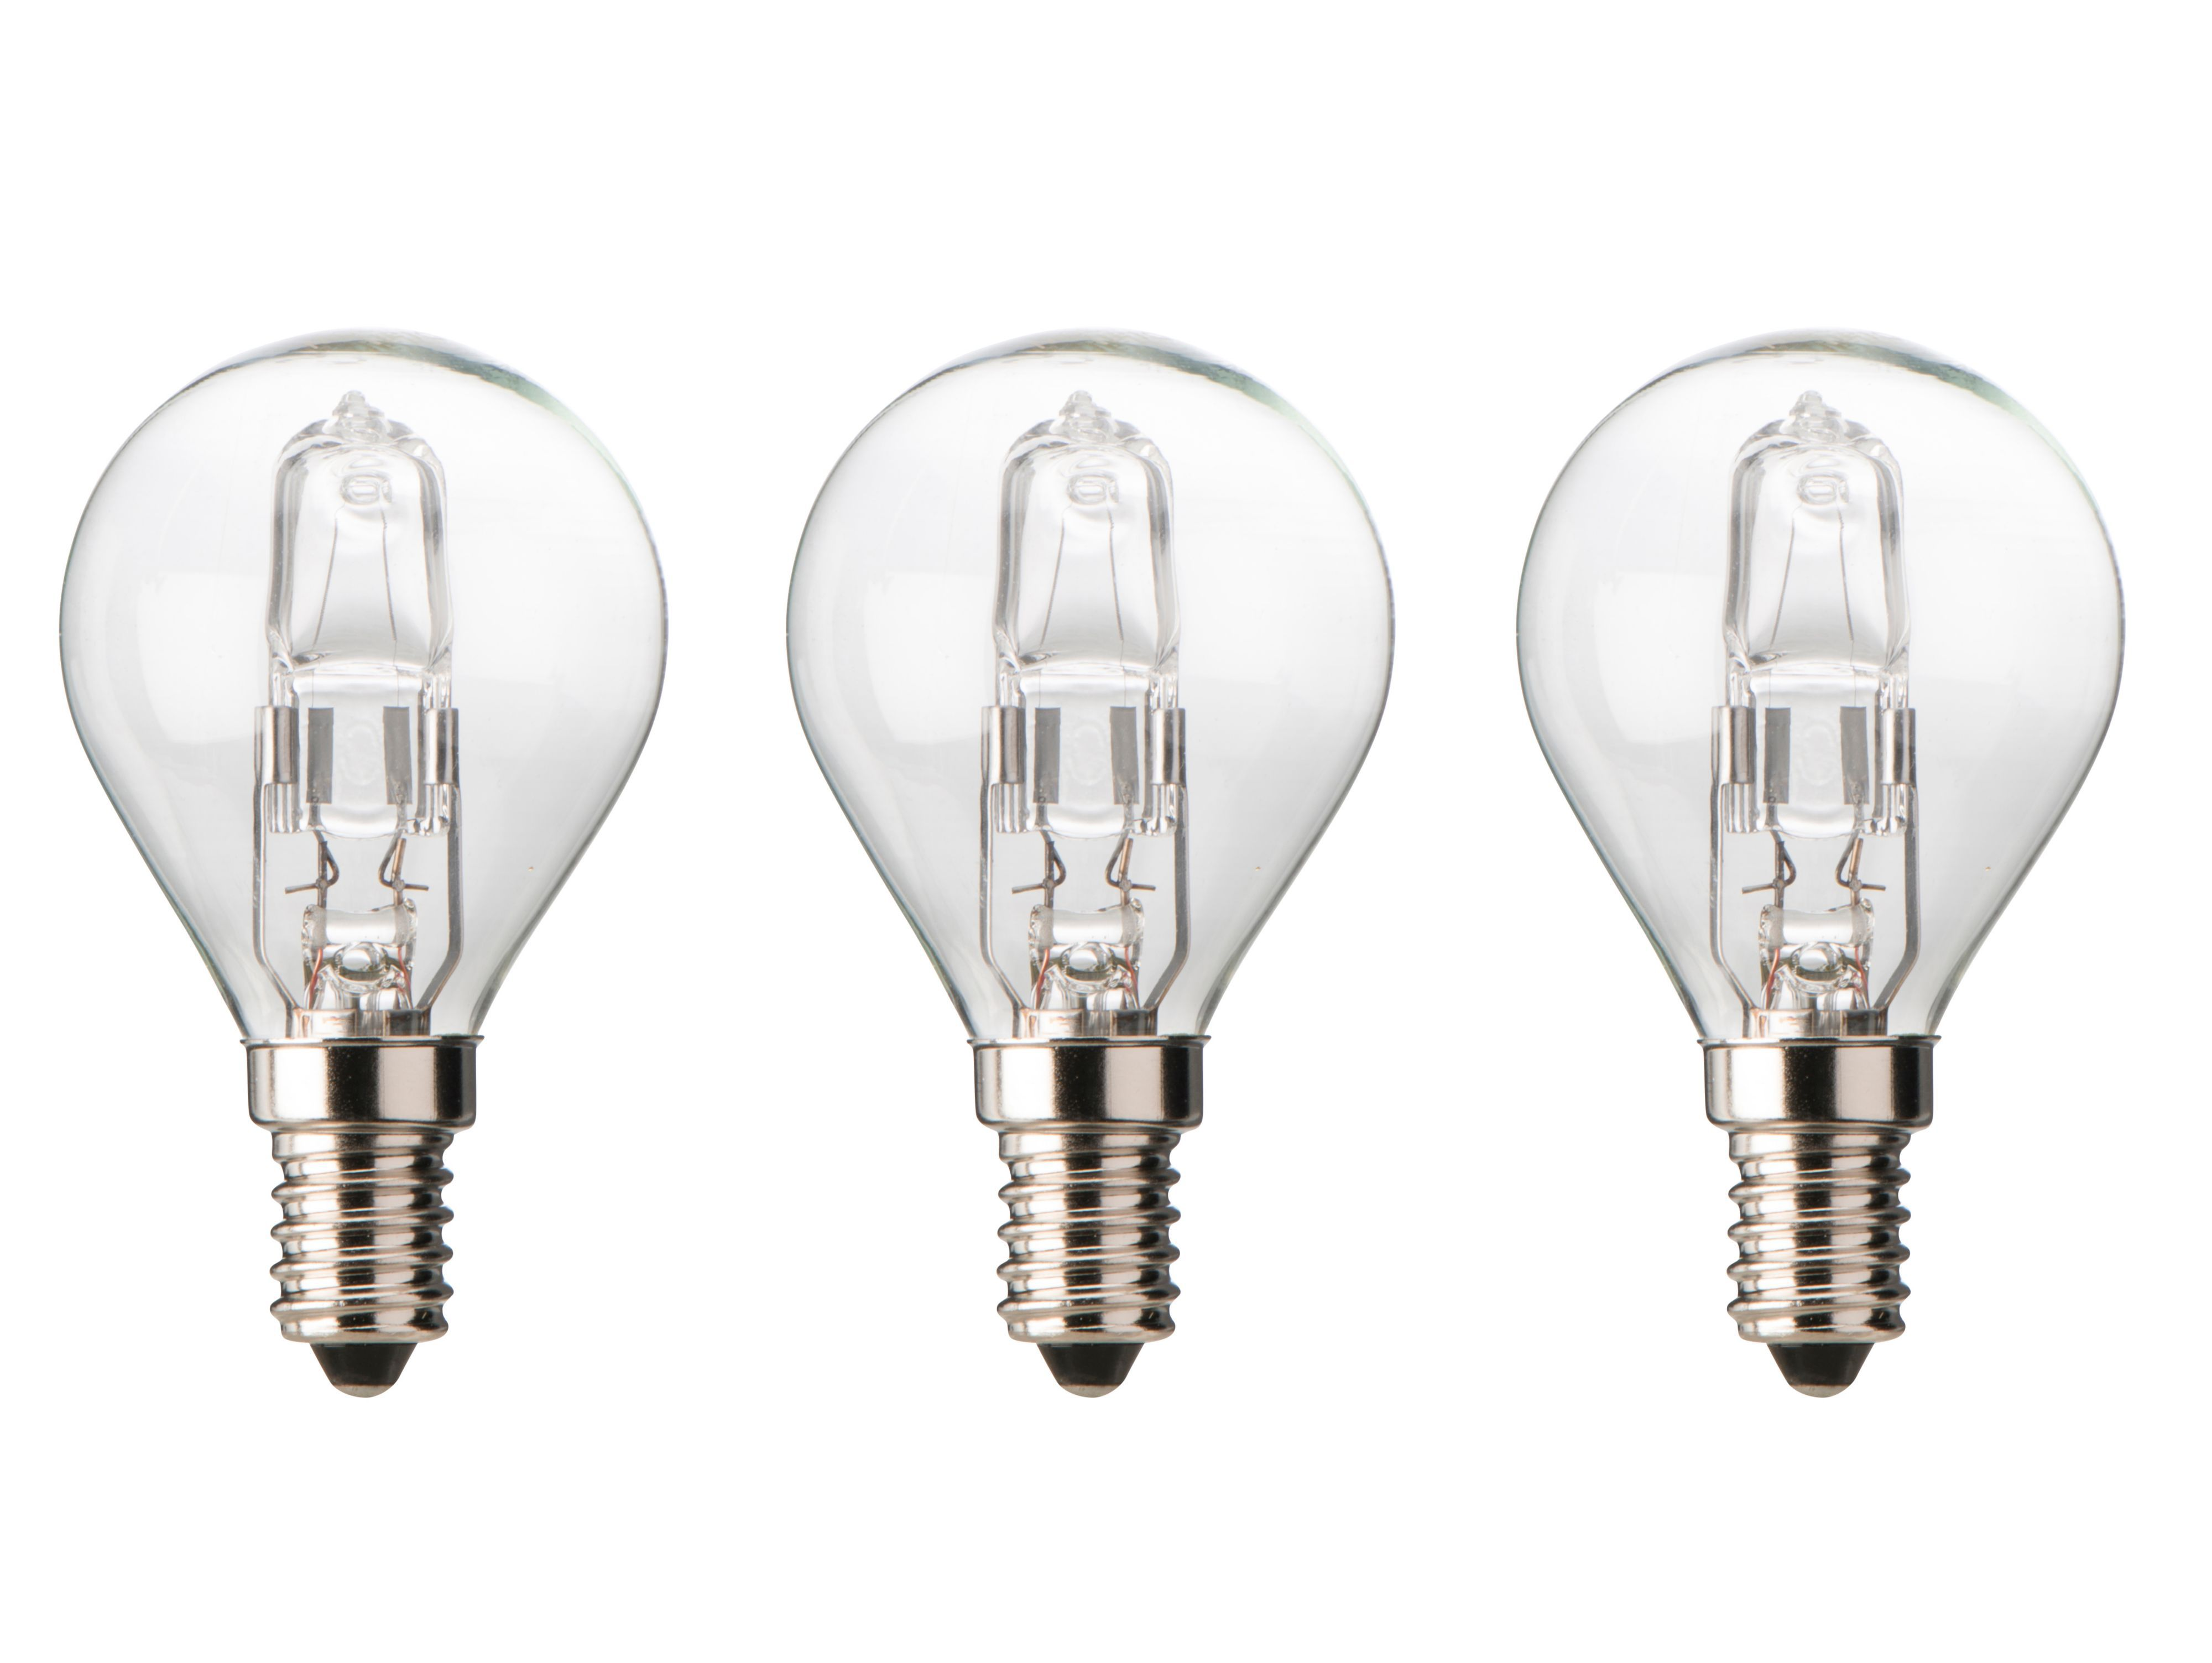 Diall E14 30w Halogen Dimmable Ball Light Bulb, Pack Of 3